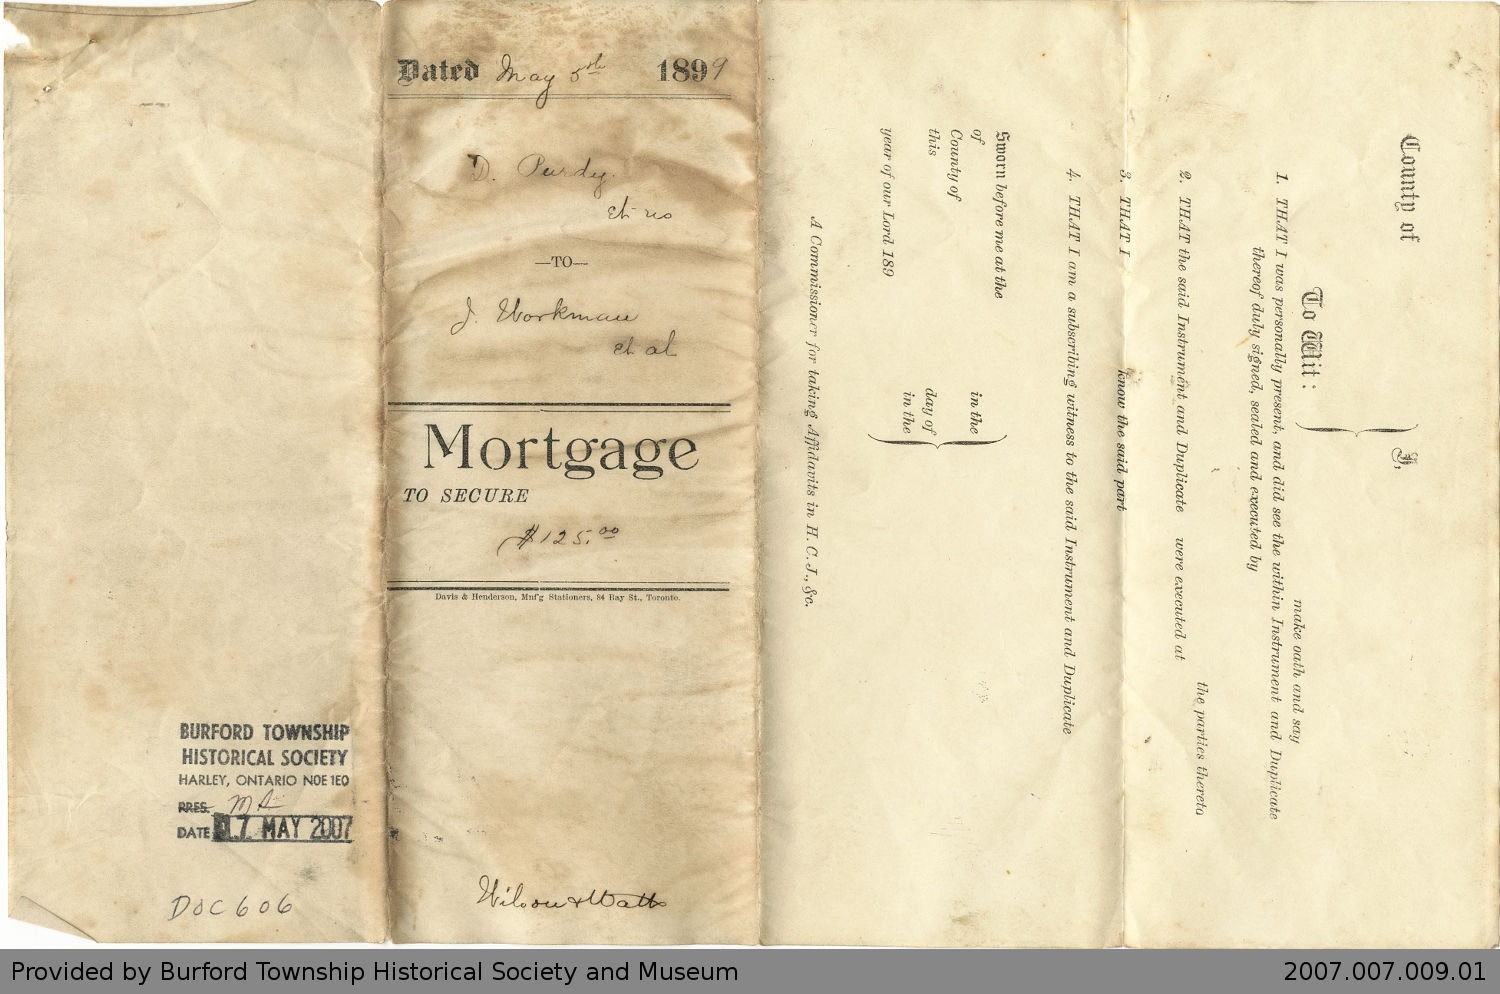 Mortgage Agreement Between Dennis Purdy and James Workman